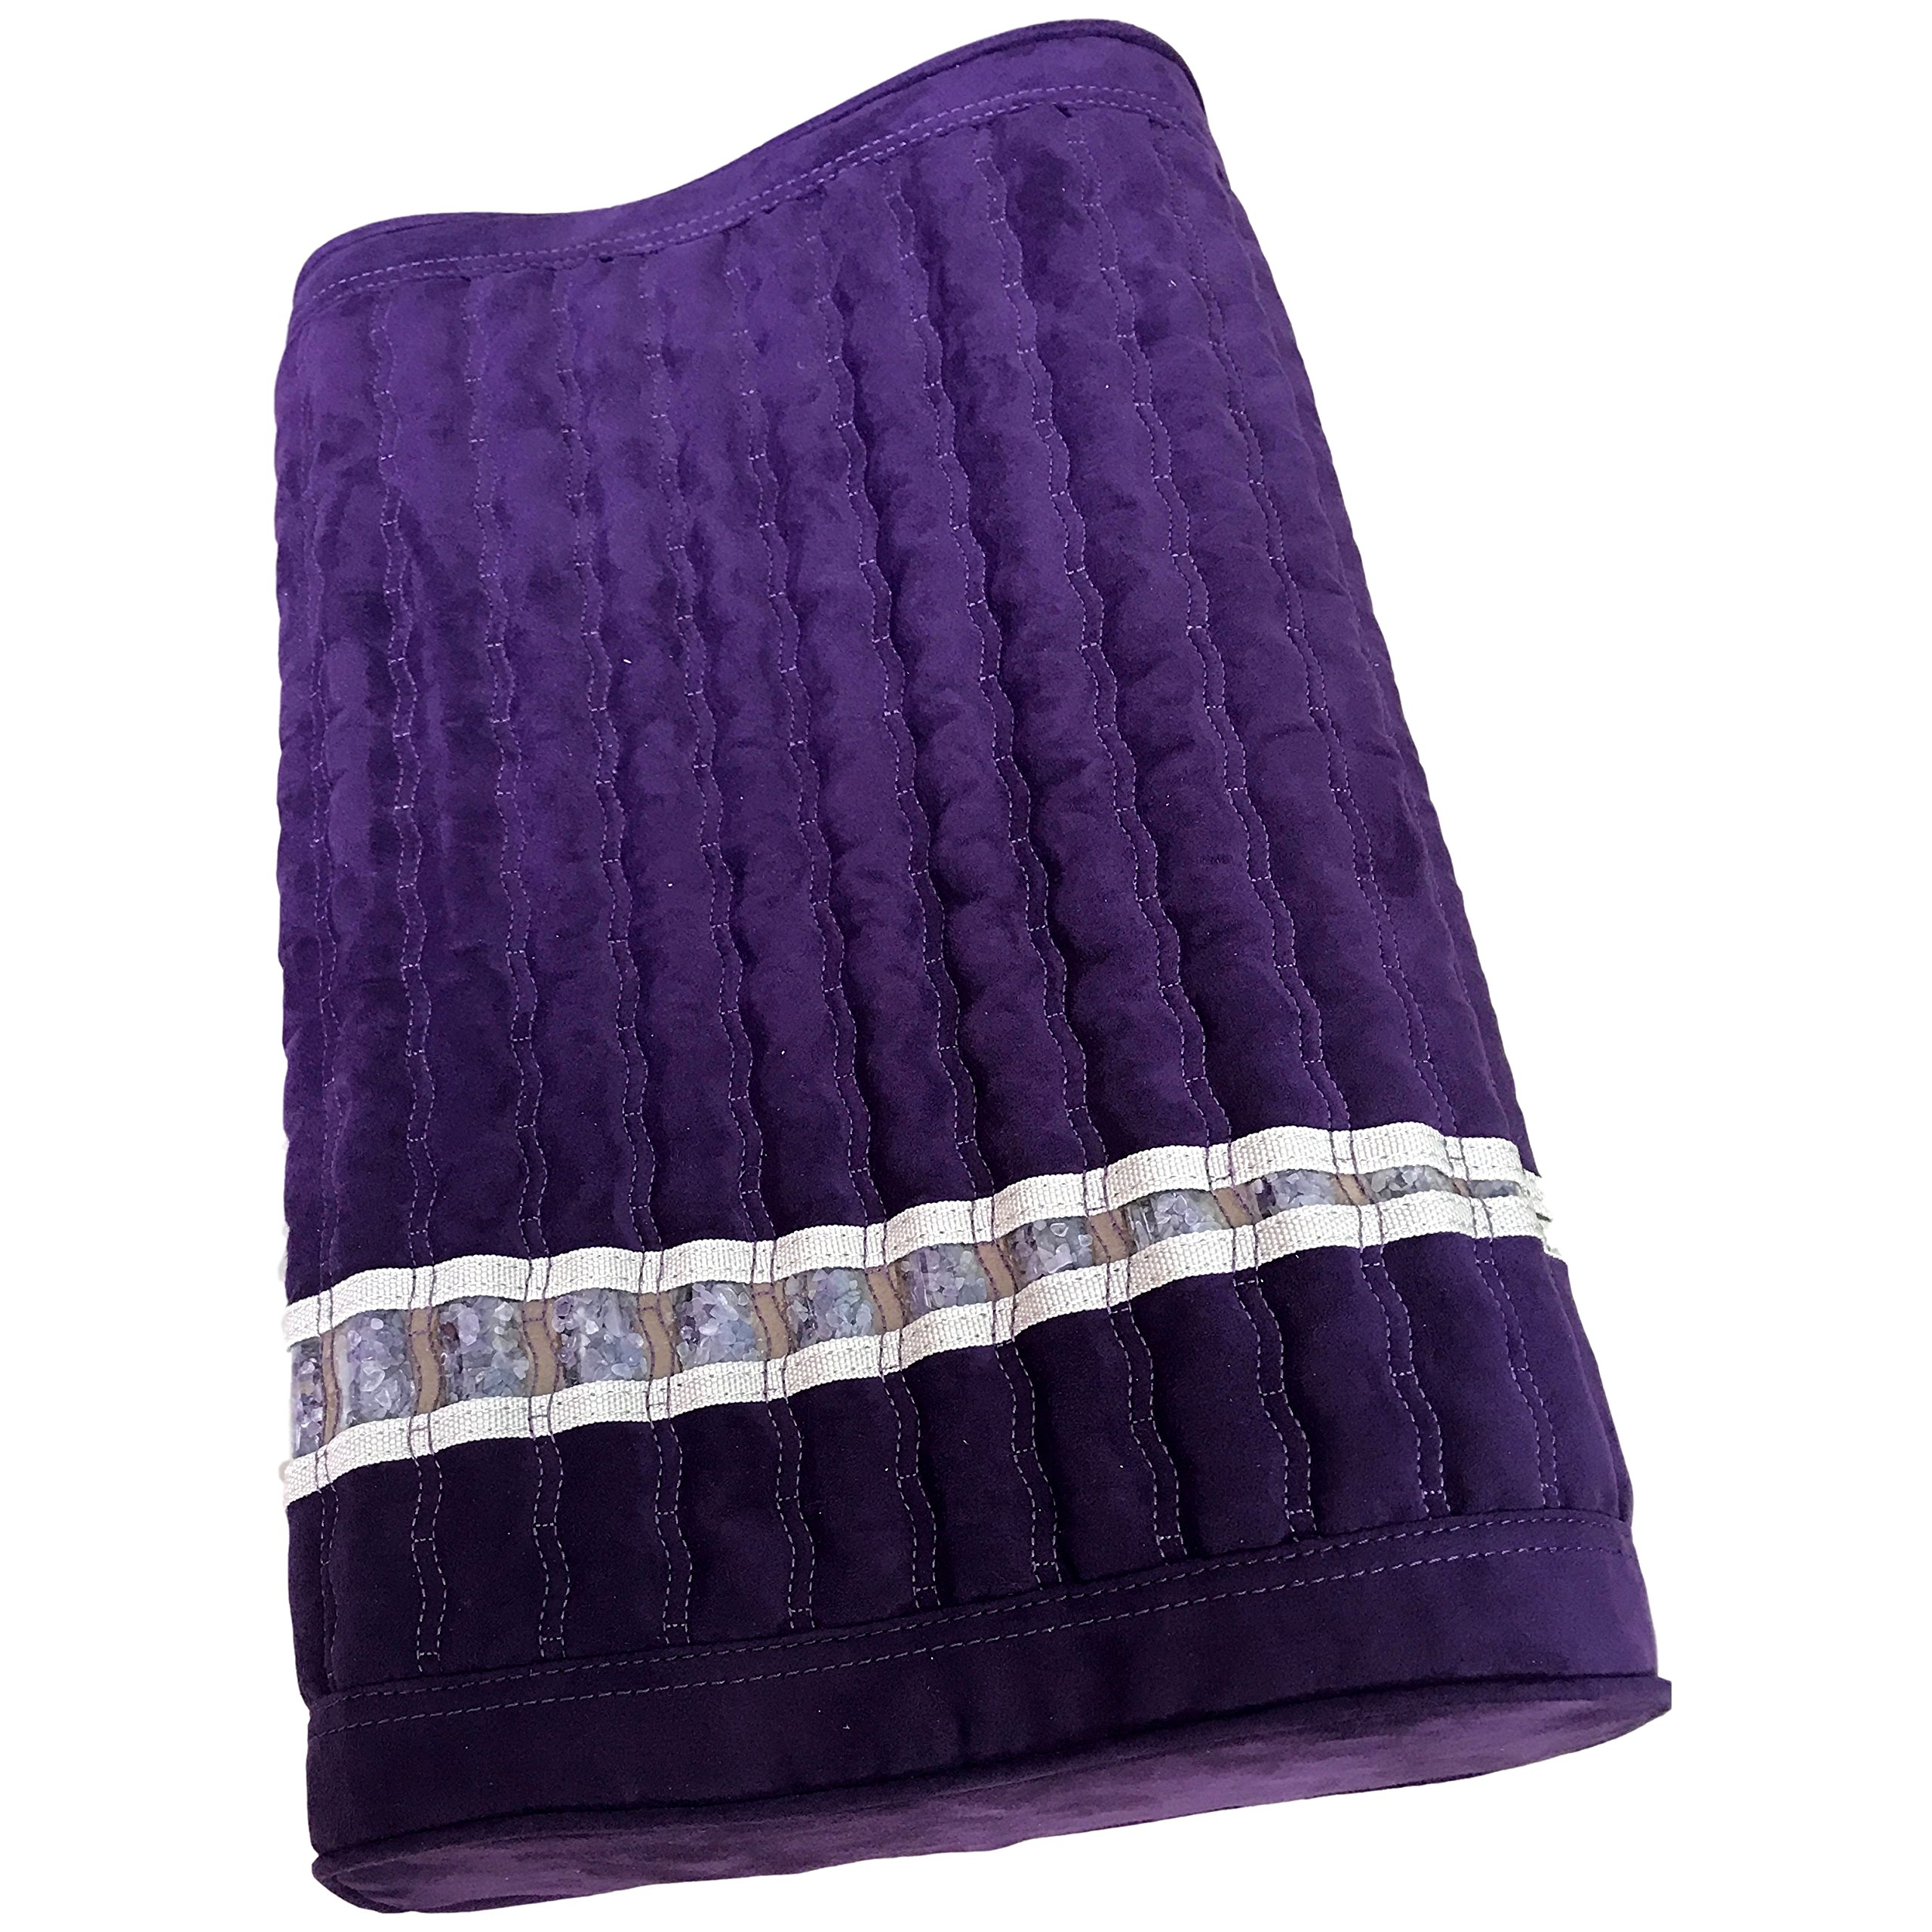 Far Infrared Amethyst Mat Pillow - Emits Negative Ions - Crystal FIR Rays - 100% Natural Amethyst Gemstones - Non Electric - For Headache and Stress Relief - To Sleep Better - GENTLE support - Purple by MediCrystal (Image #2)